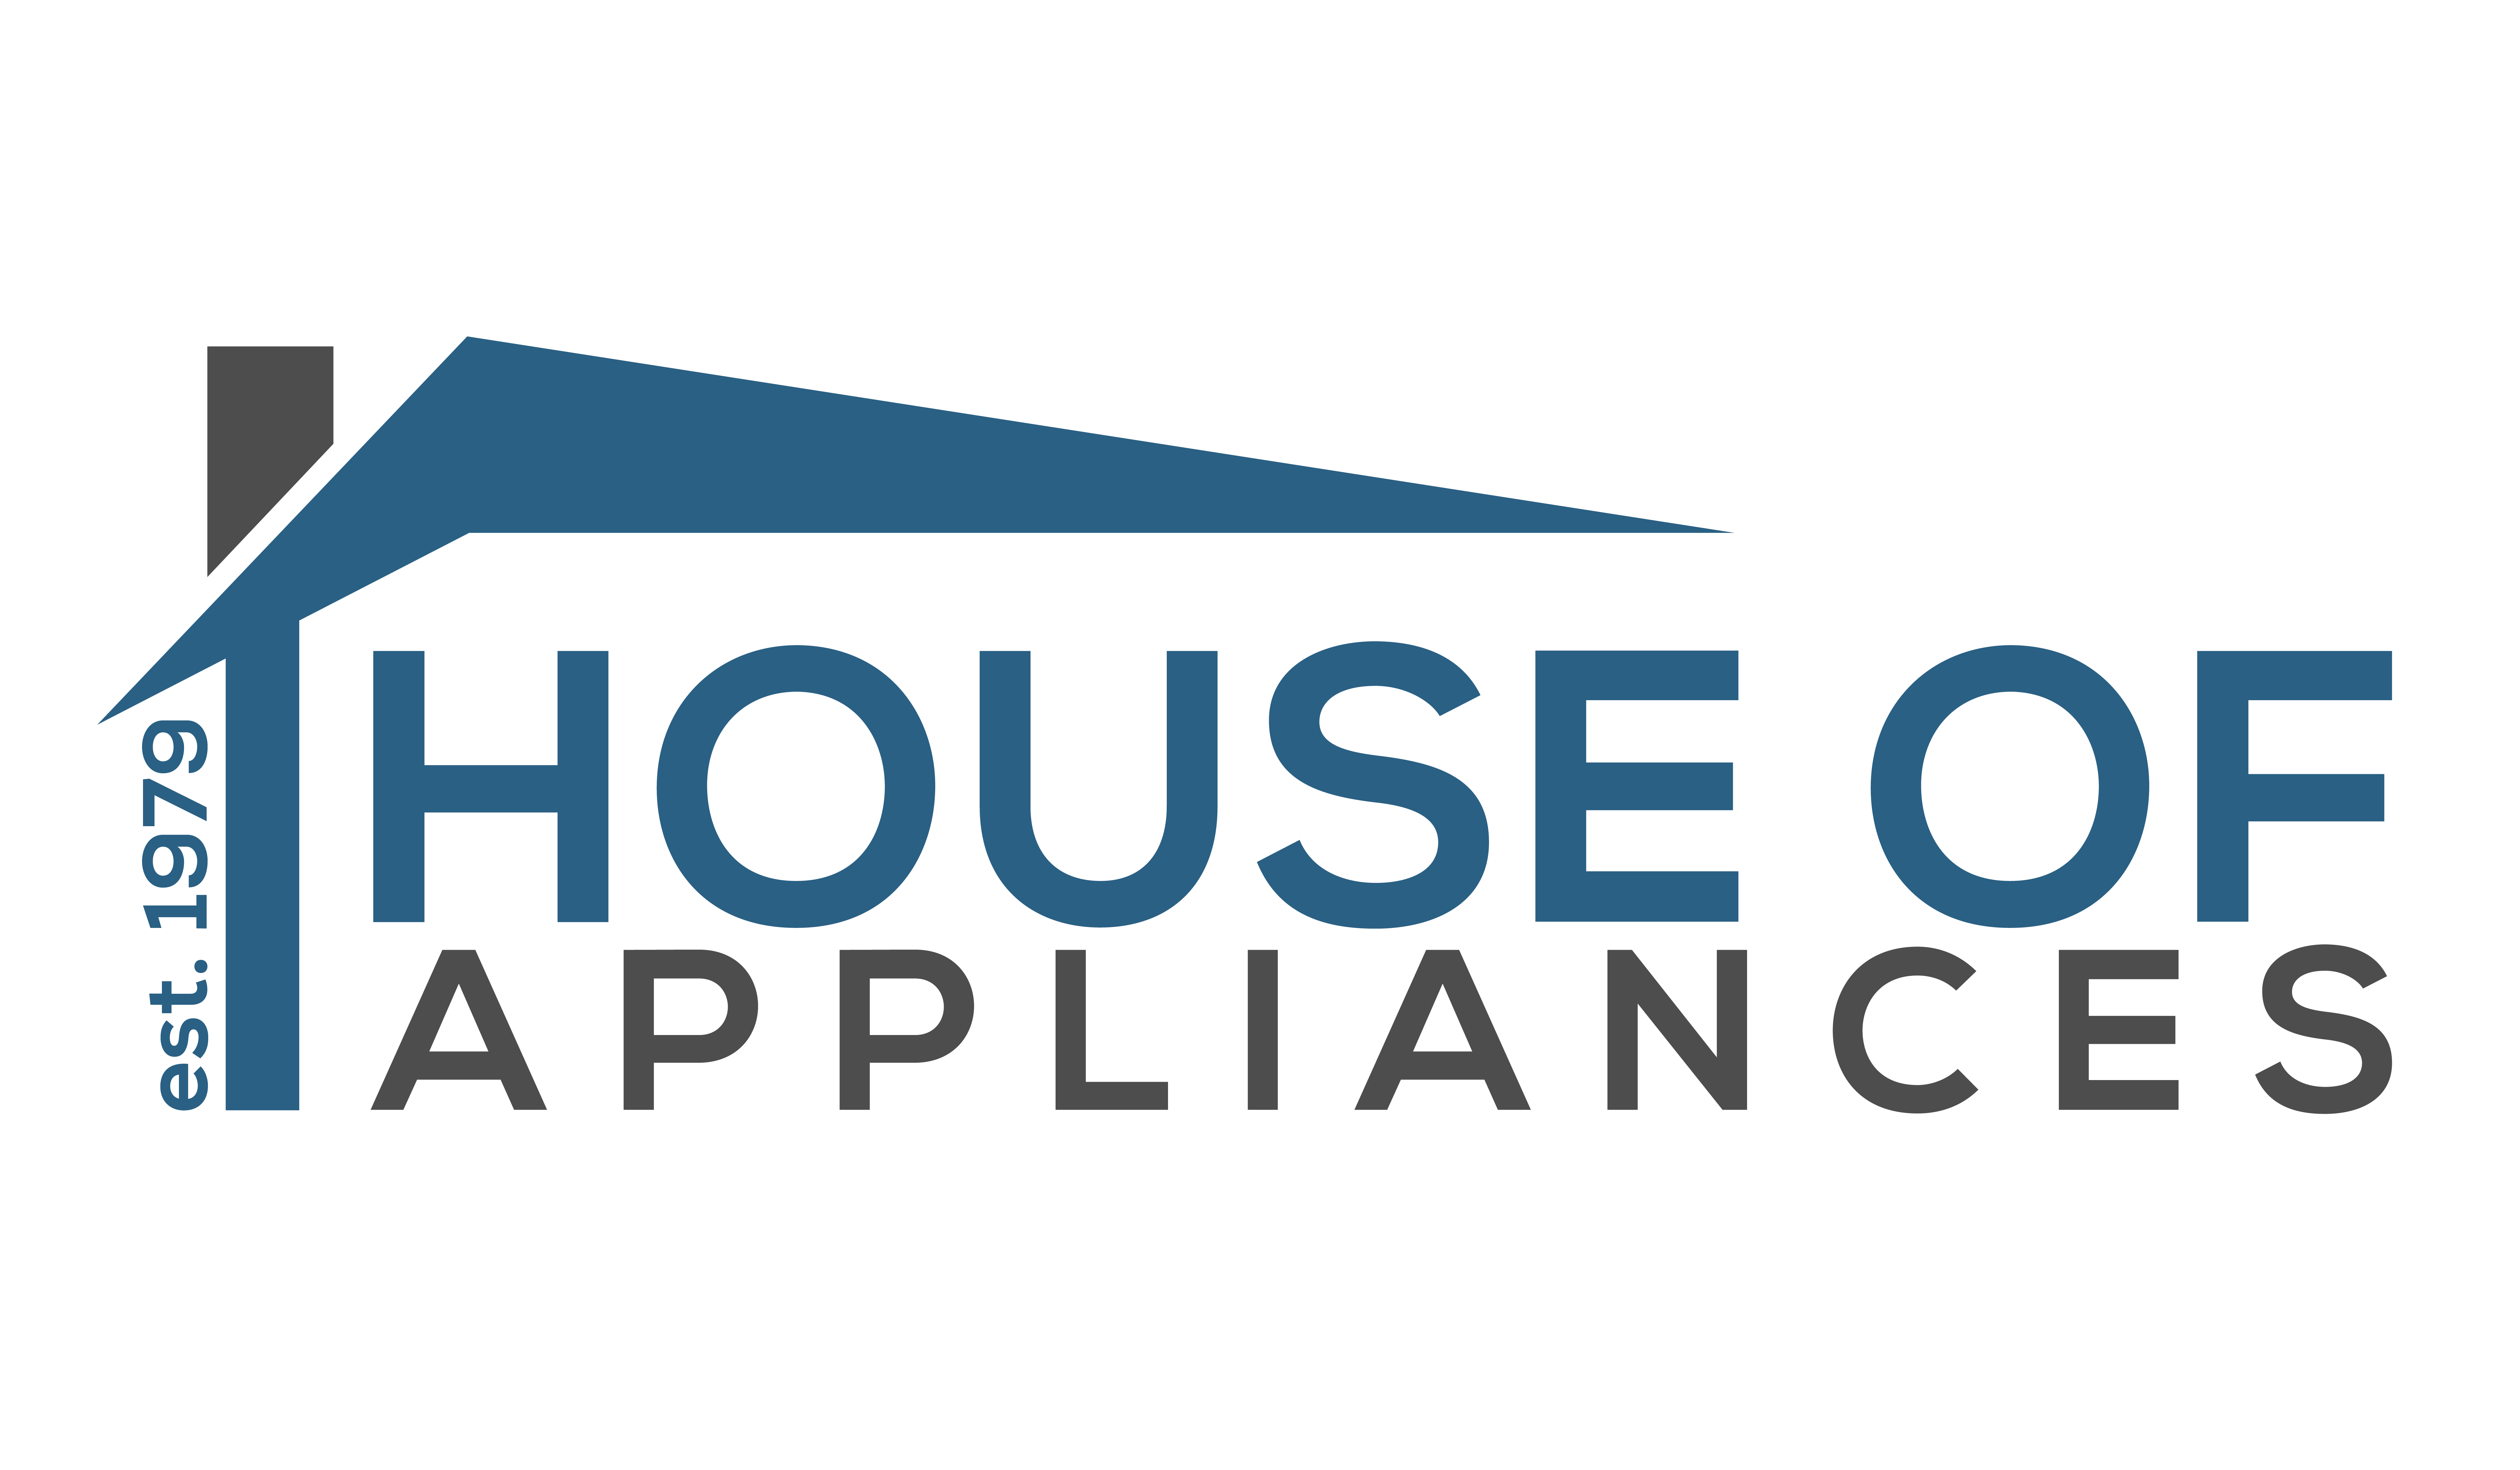 House of Appliances